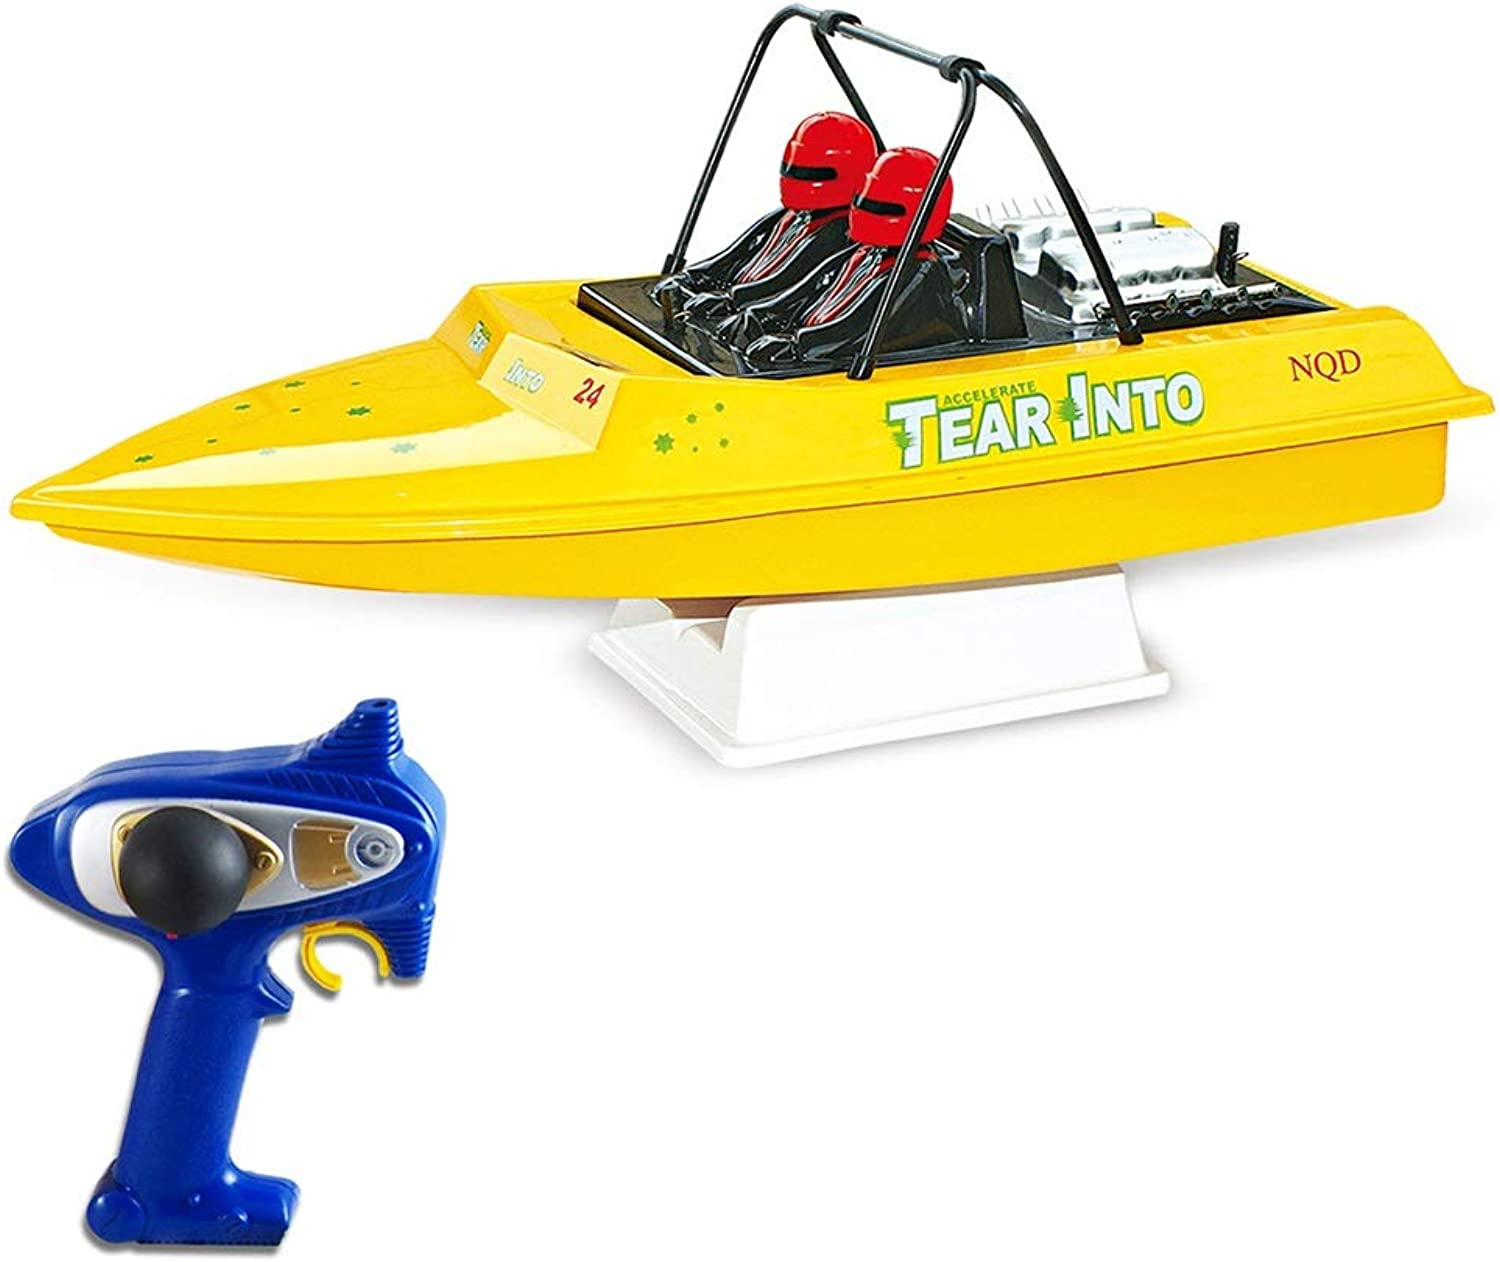 KUVV COOL White And Yellow Super Large Jet Steering Gear Remote Control Boat High Speed Remote Control Speedboat Water Navigation Model Ship ( color   Yellow )